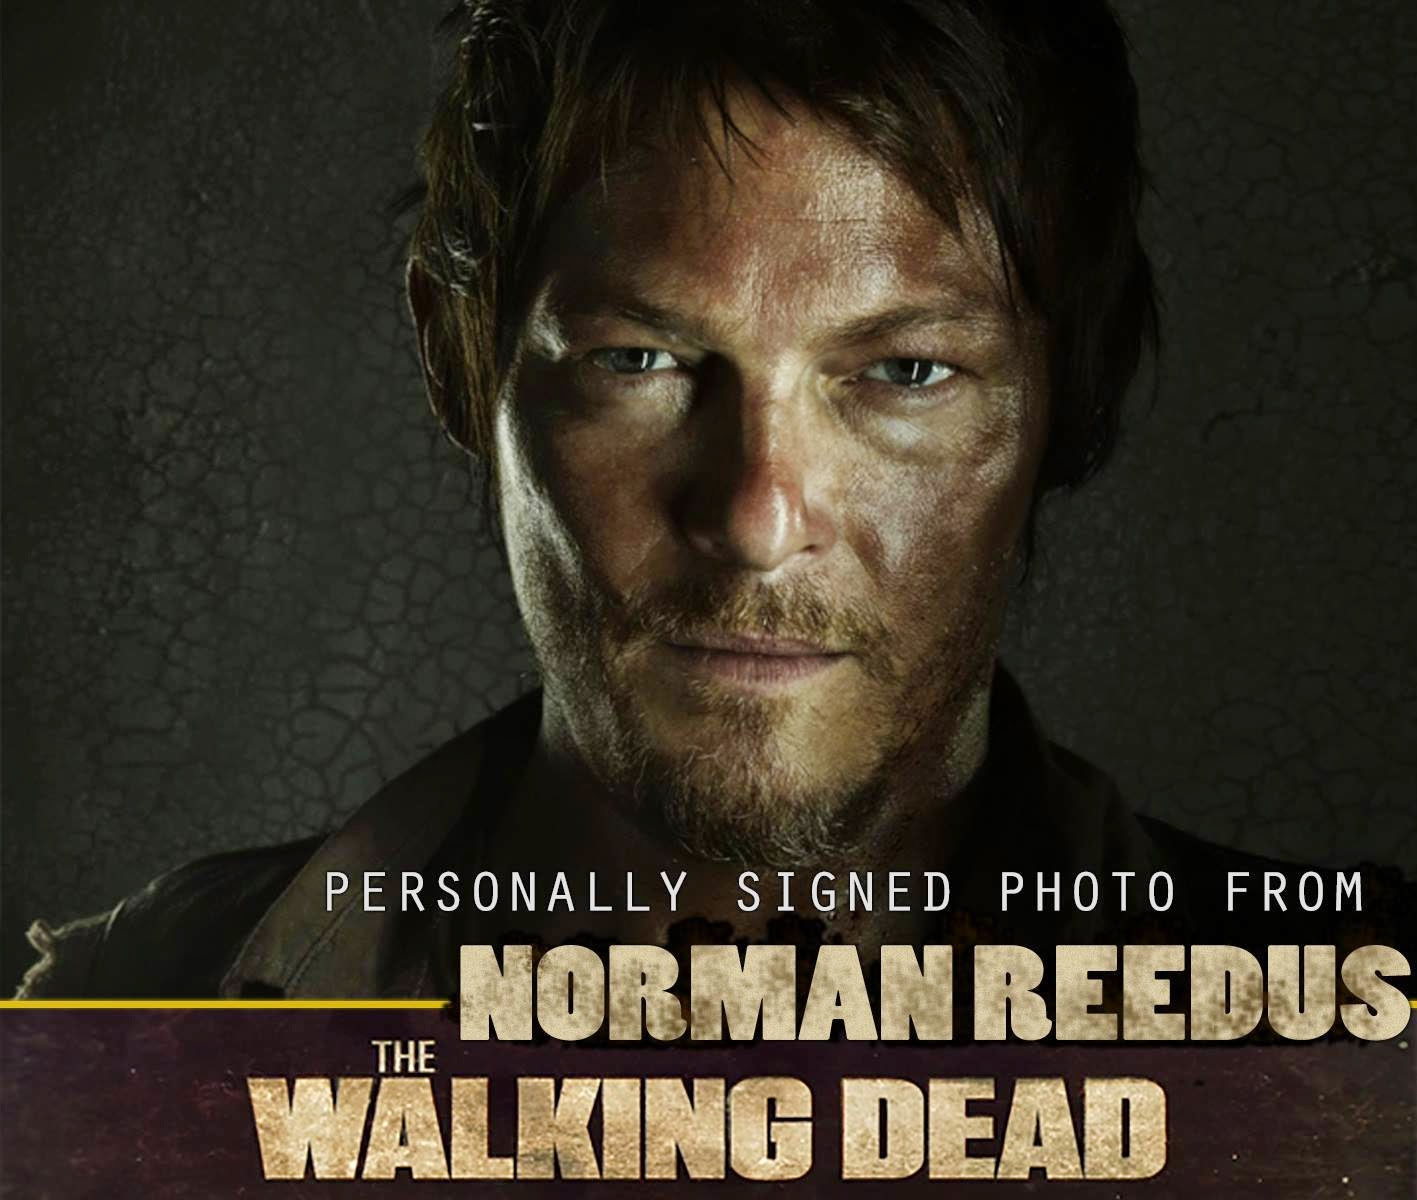 Support an Independent Film, Get A Signed Norman Reedus Photograph